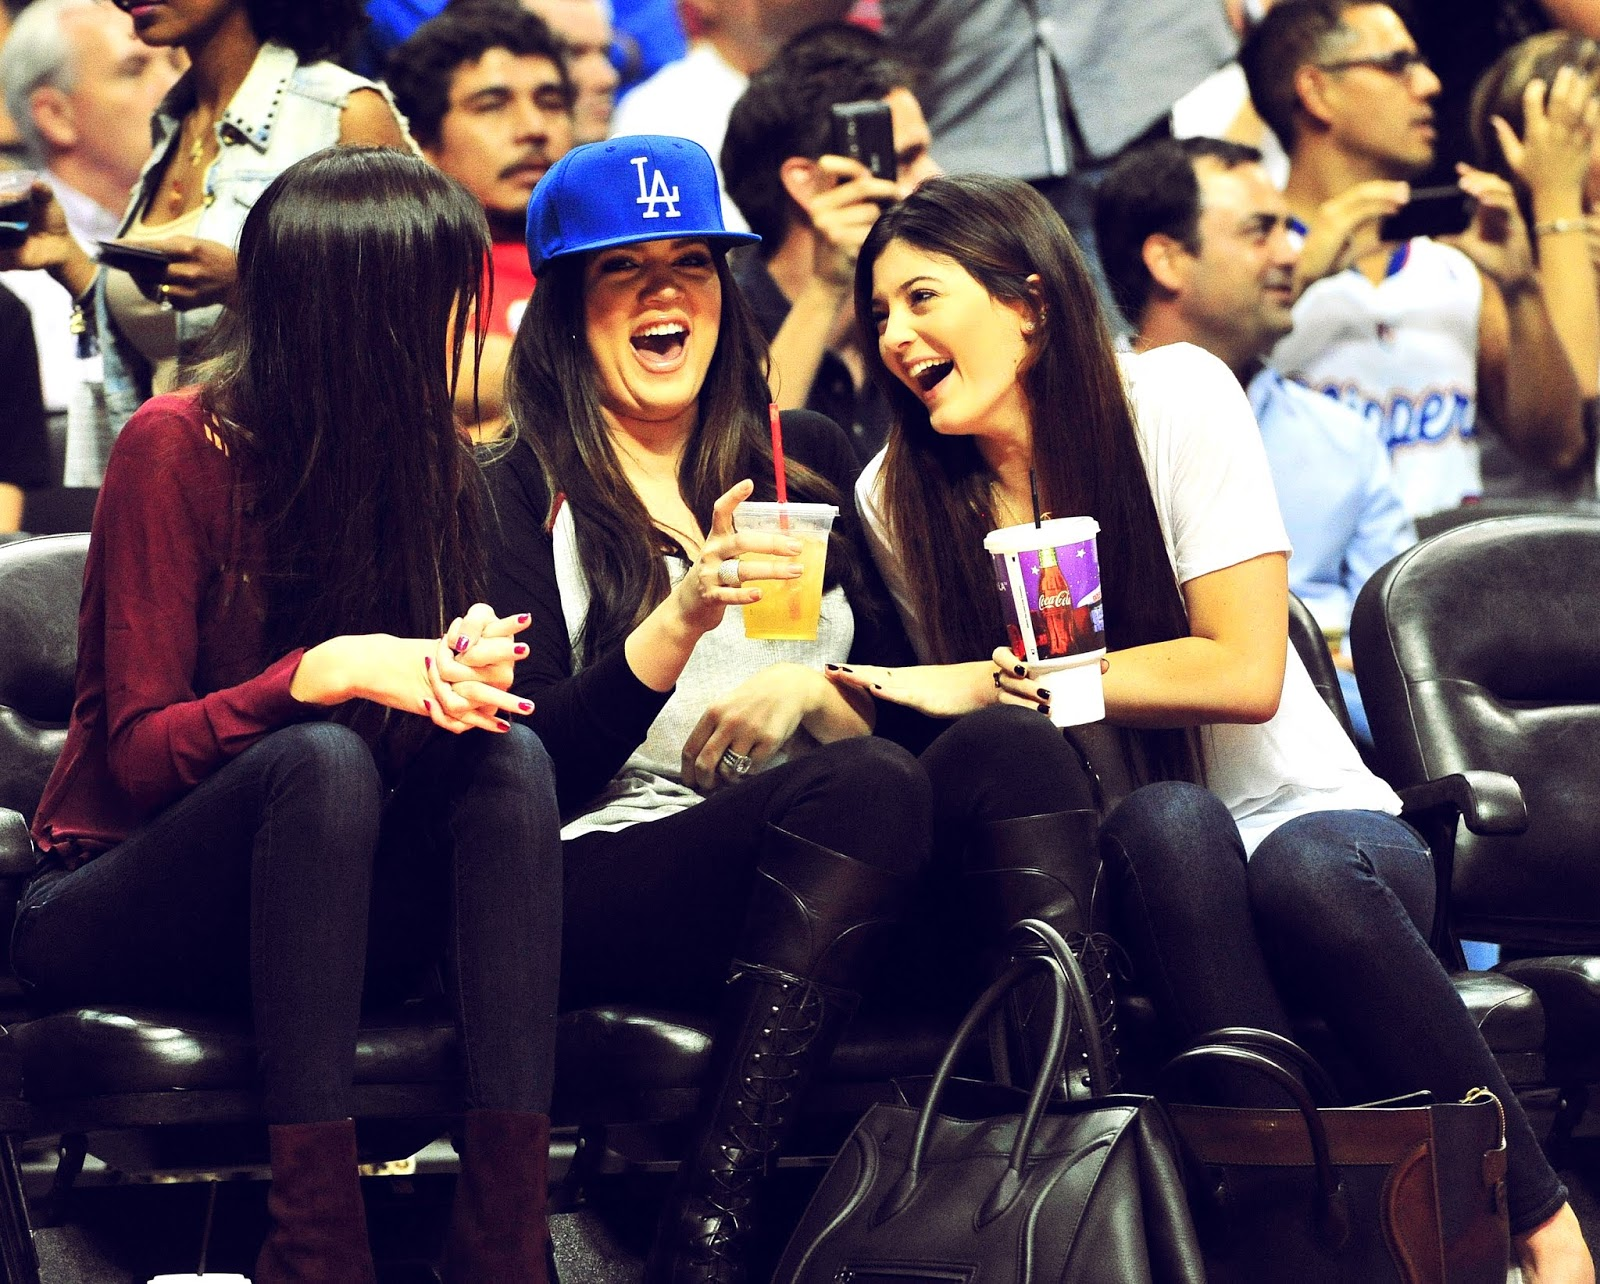 01 - Watching The Los Angeles Clippers Game on October 17, 2012